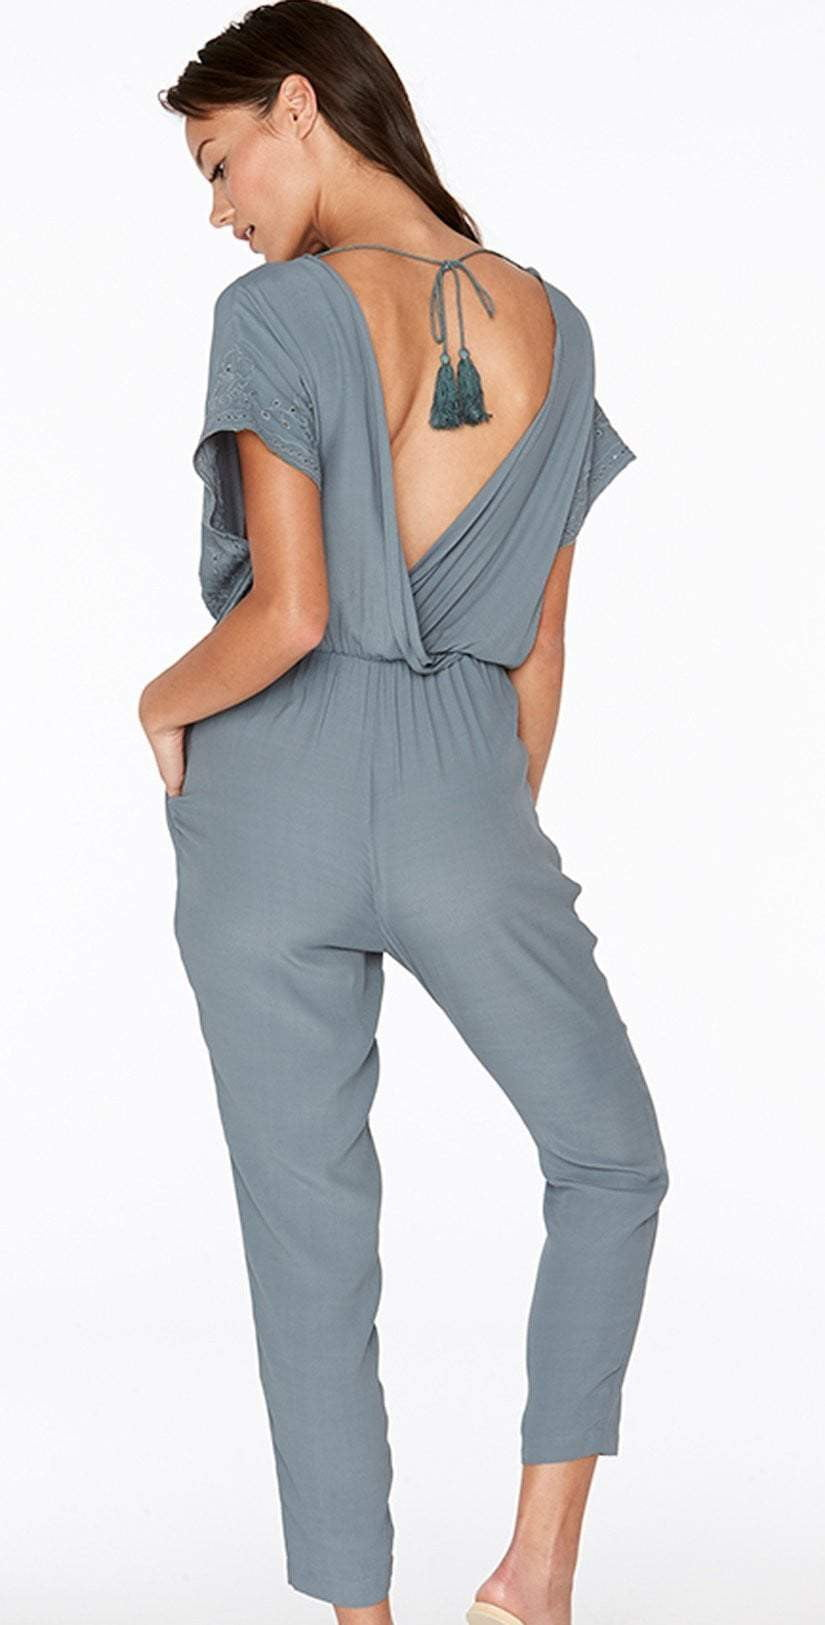 L Space Raquel Romper in Slated Glass RAQJU18-SLG: